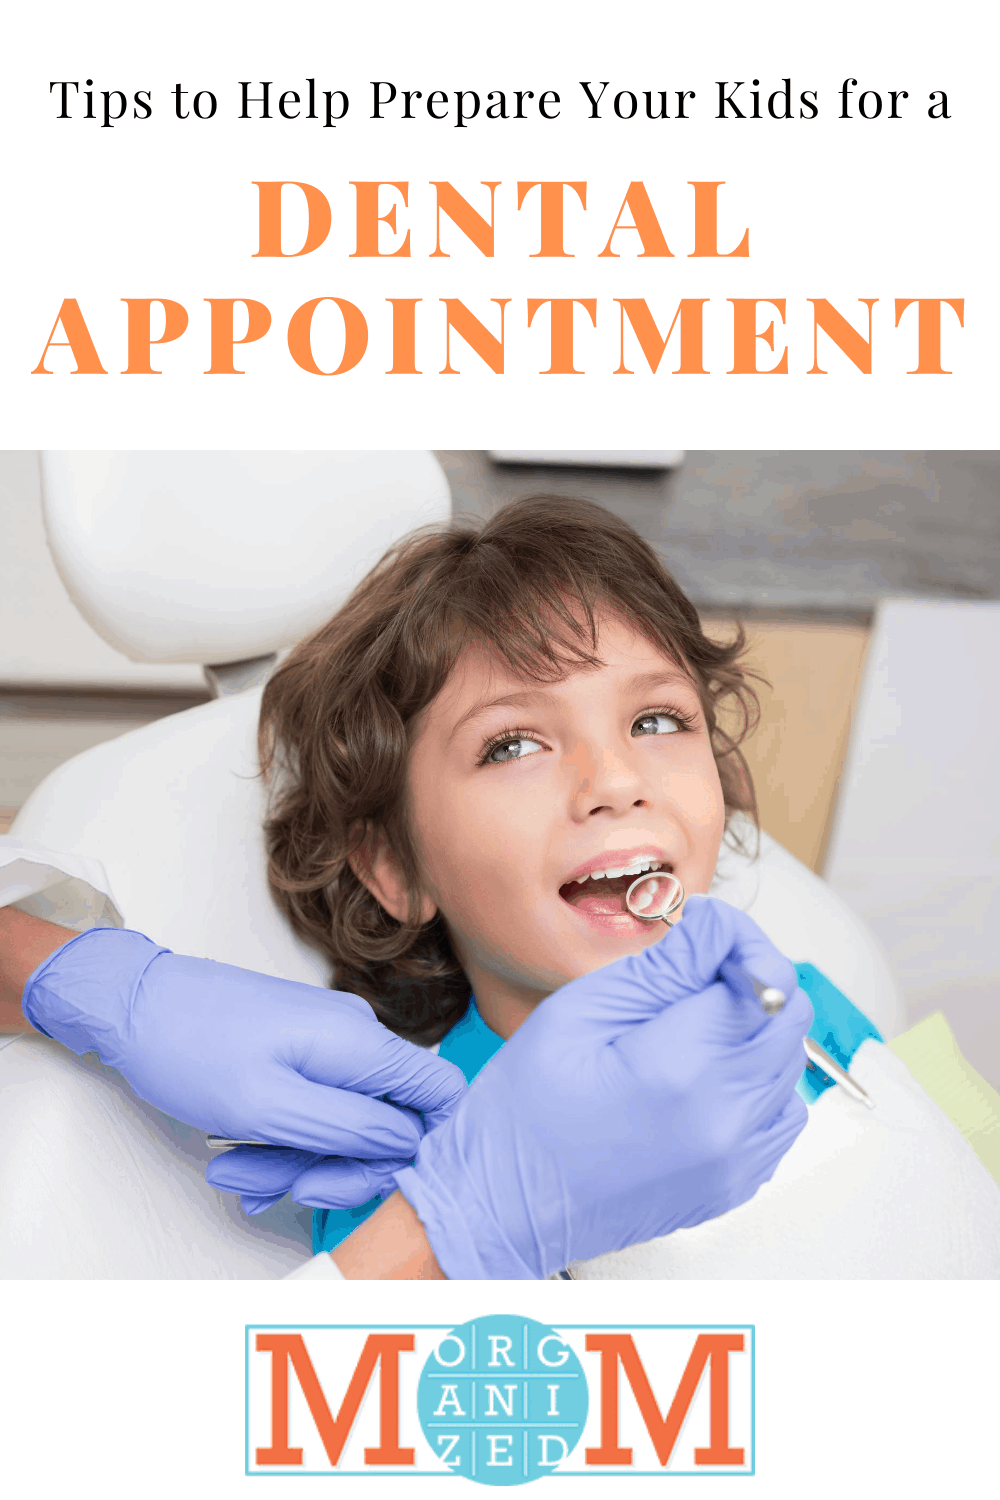 prepare your kids for a dental appointment